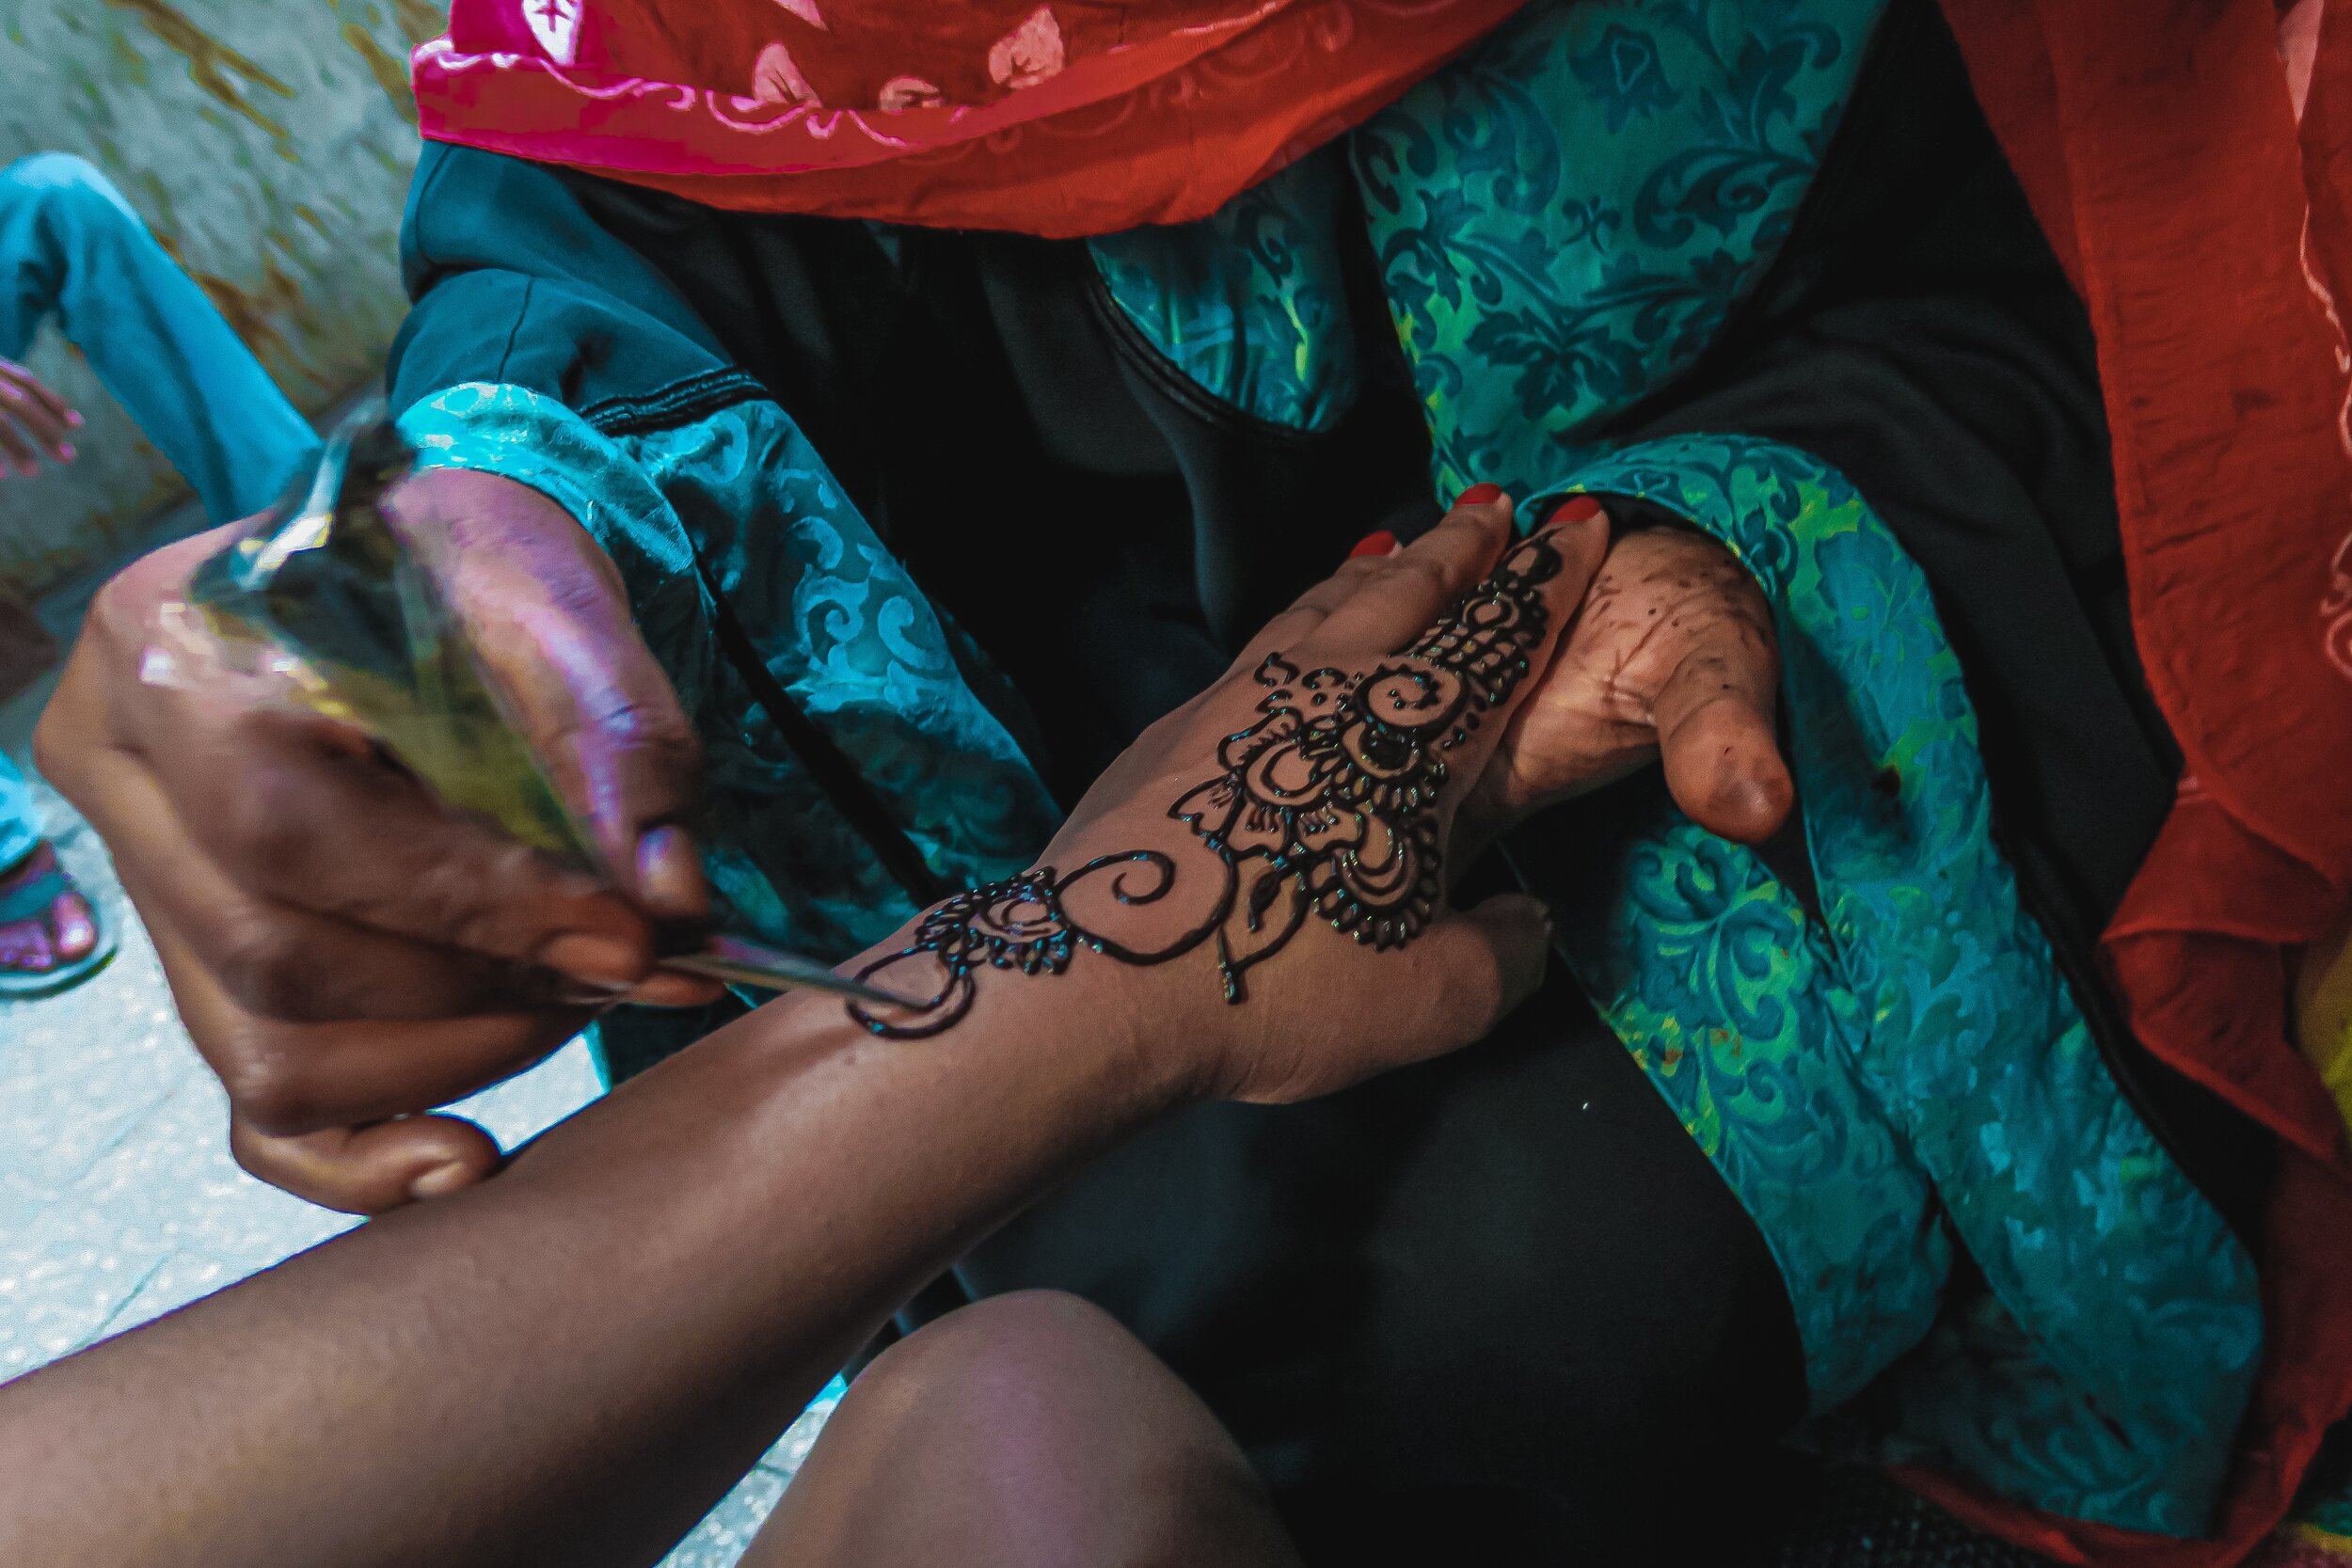 Black Henna is a must - But make sure to do a patch test BEFORE getting black henna as some people can be highly allergic